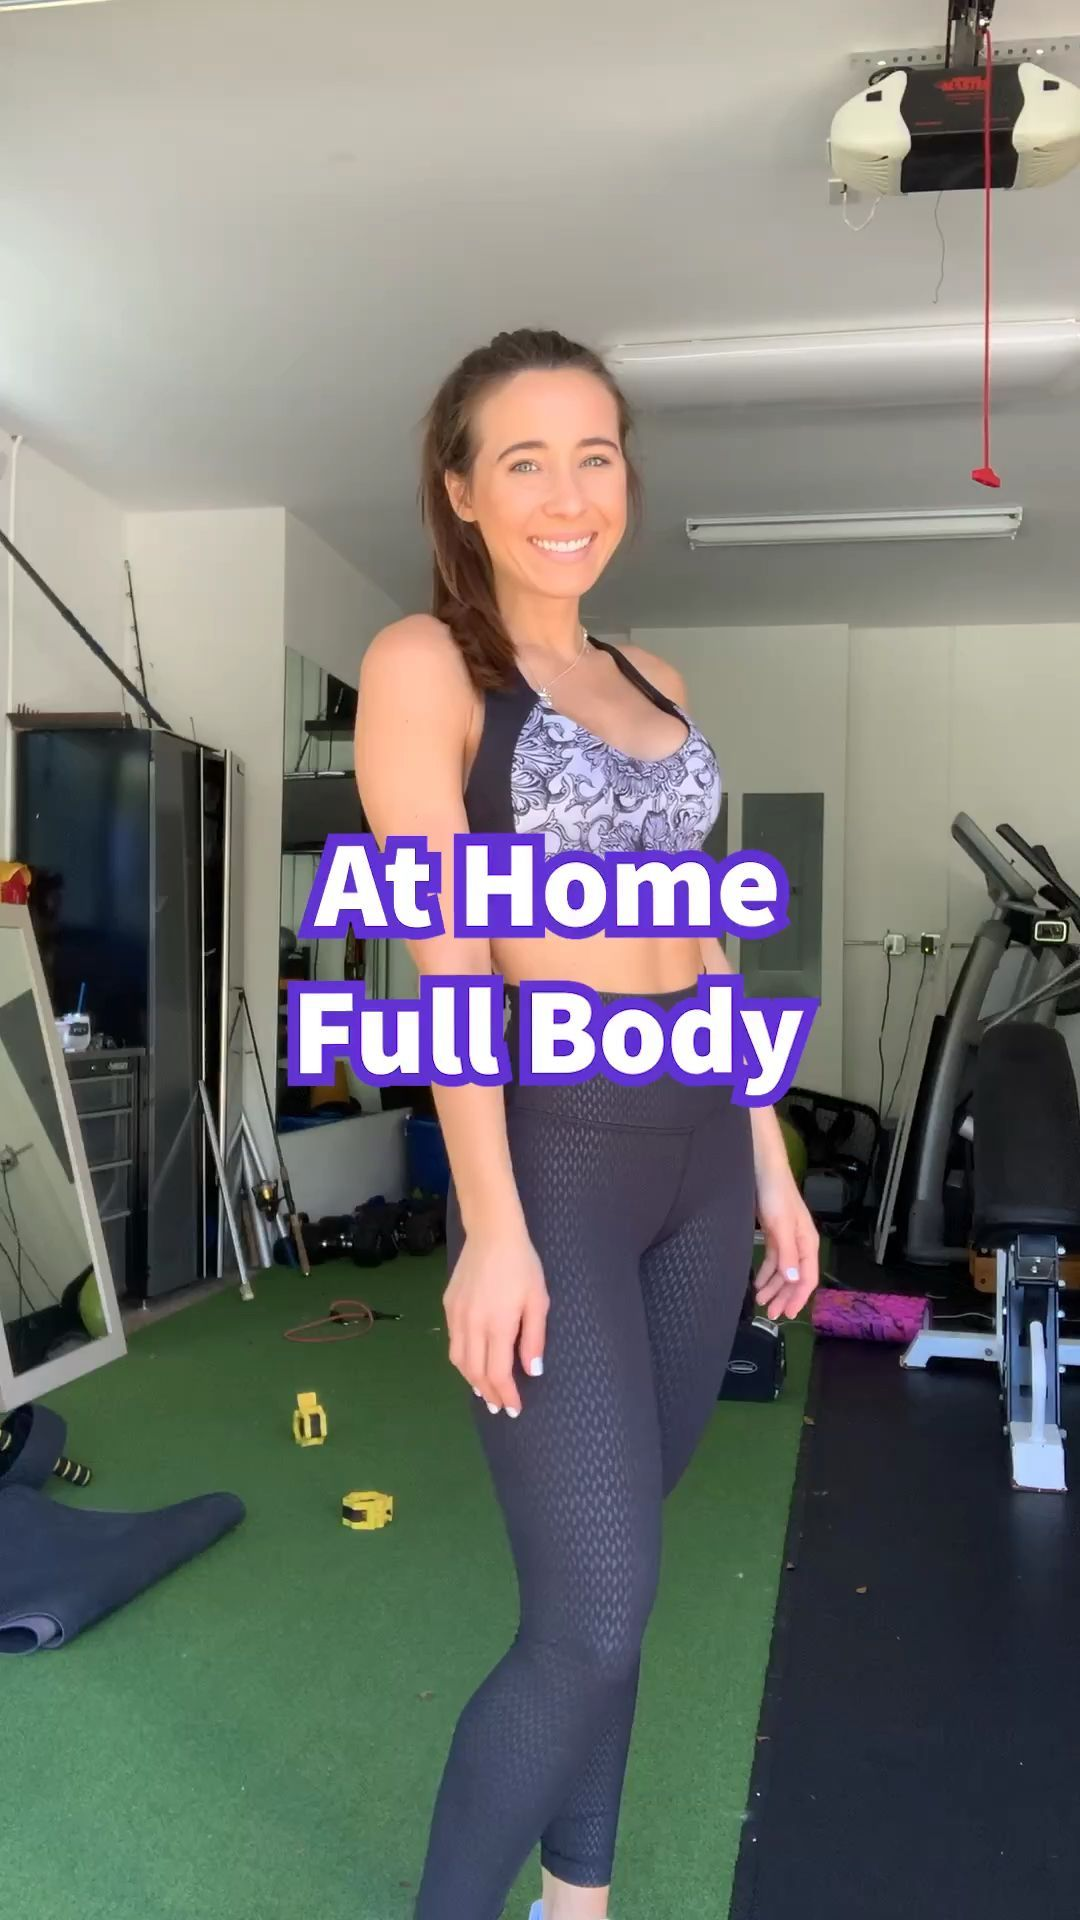 ✔ Fitness Outfits Videos Lululemon #fitgirl #healthylifestyle #fitness